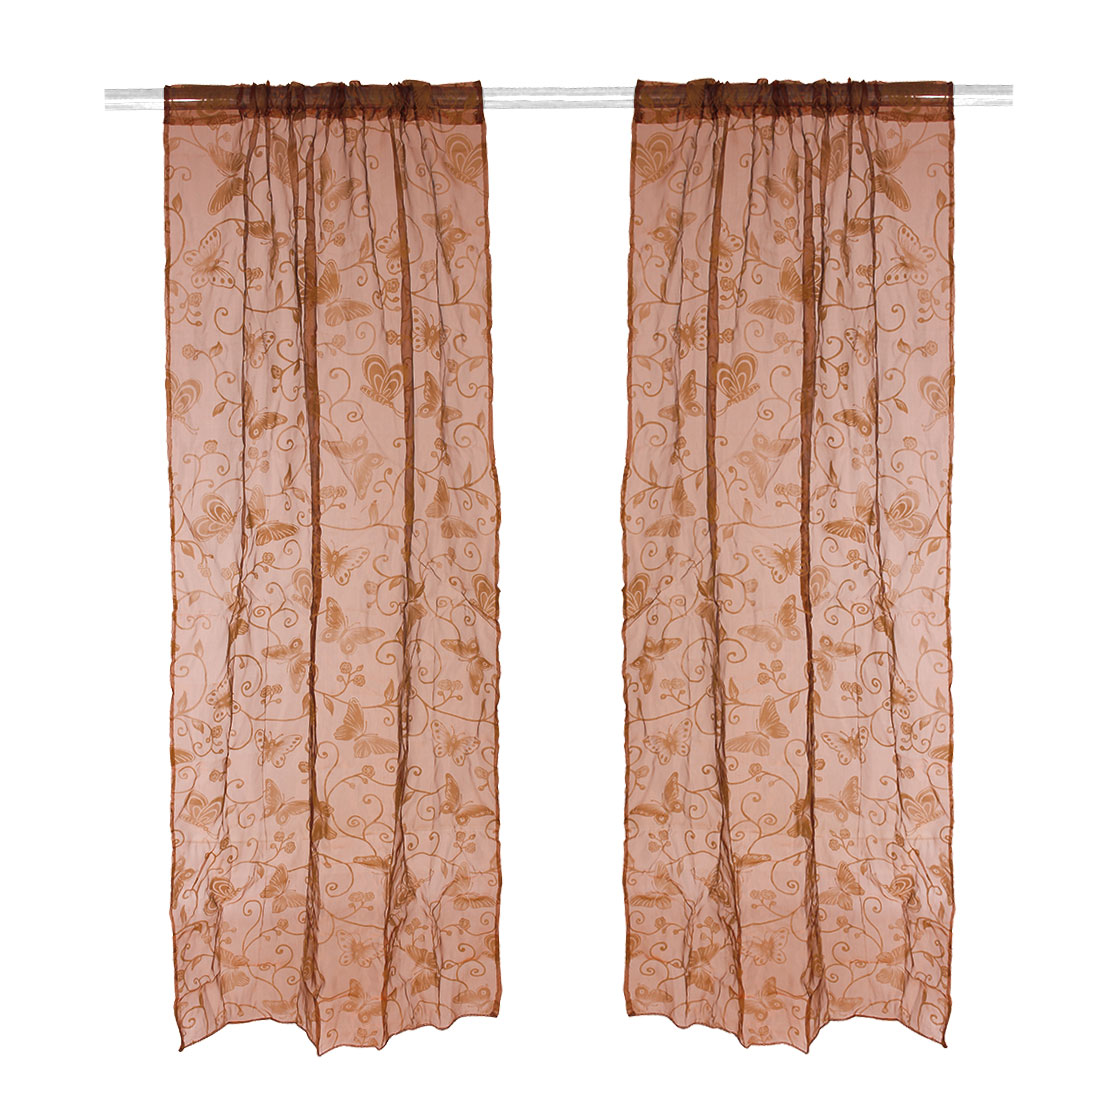 Hotel Butterfly Pattern Valance Drape Panel Voile Sheer Curtain Coffee Color